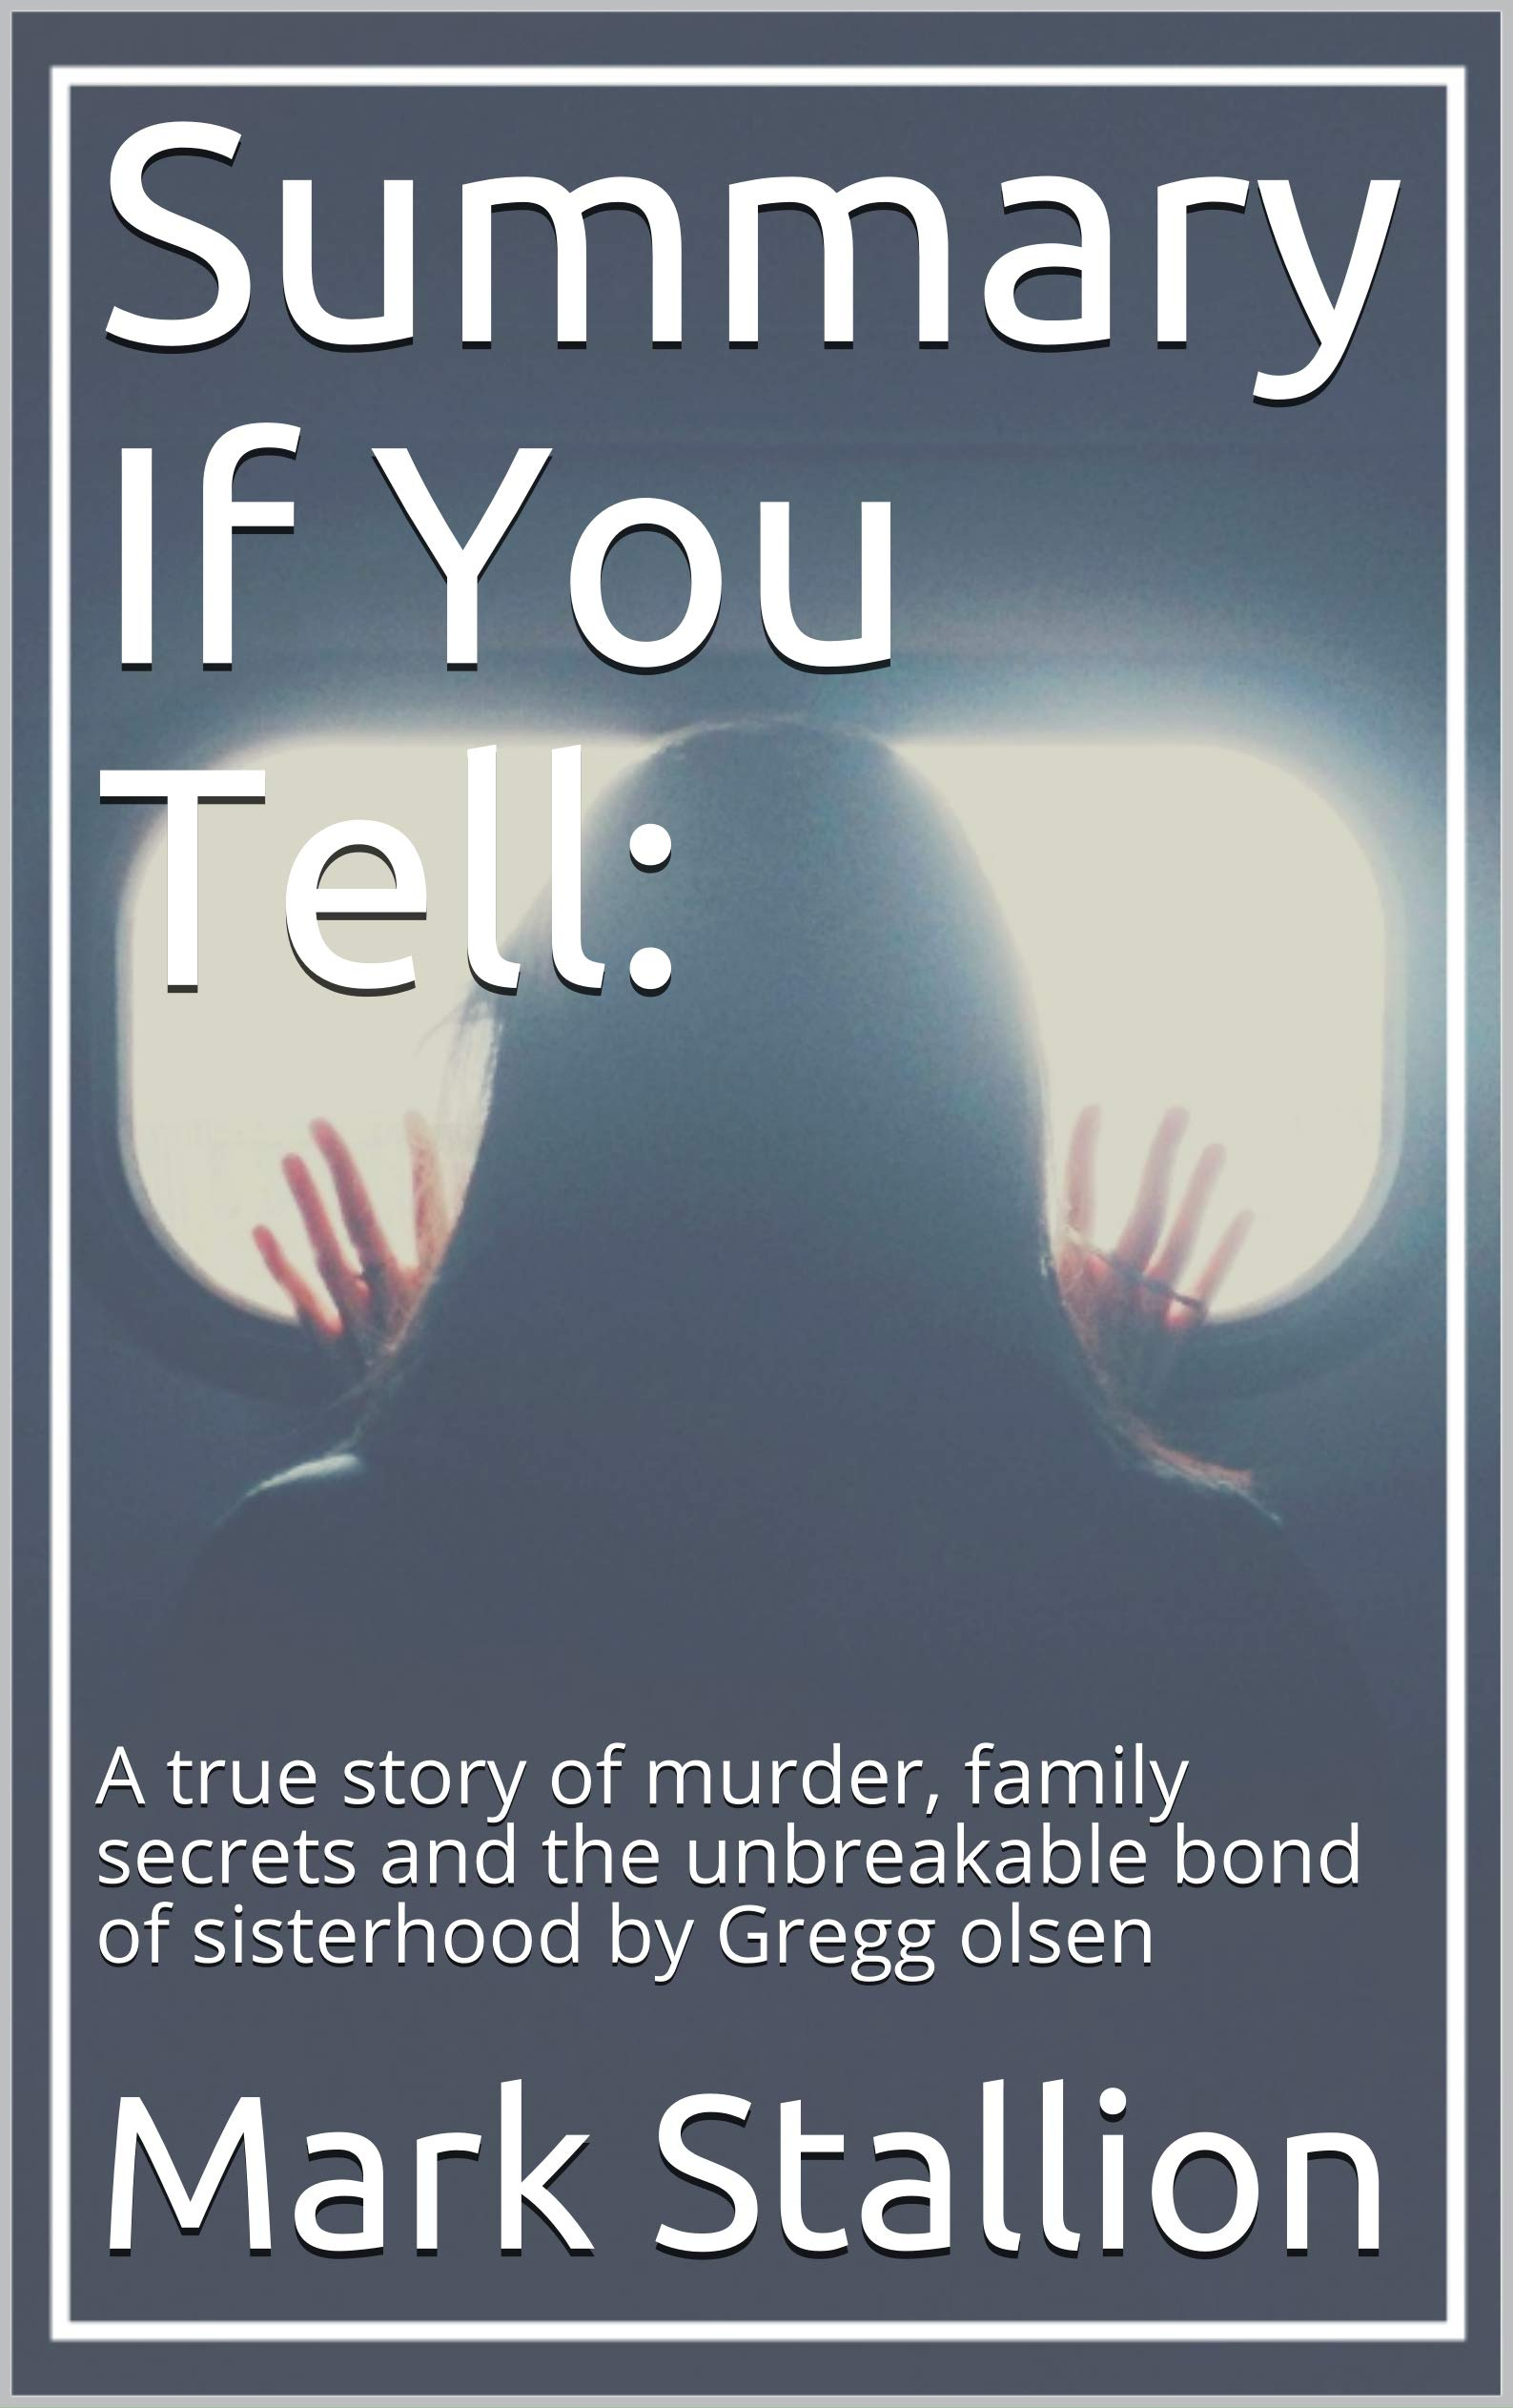 Summary If You Tell:: A true story of murder, family secrets and the unbreakable bond of sisterhood by Gregg olsen